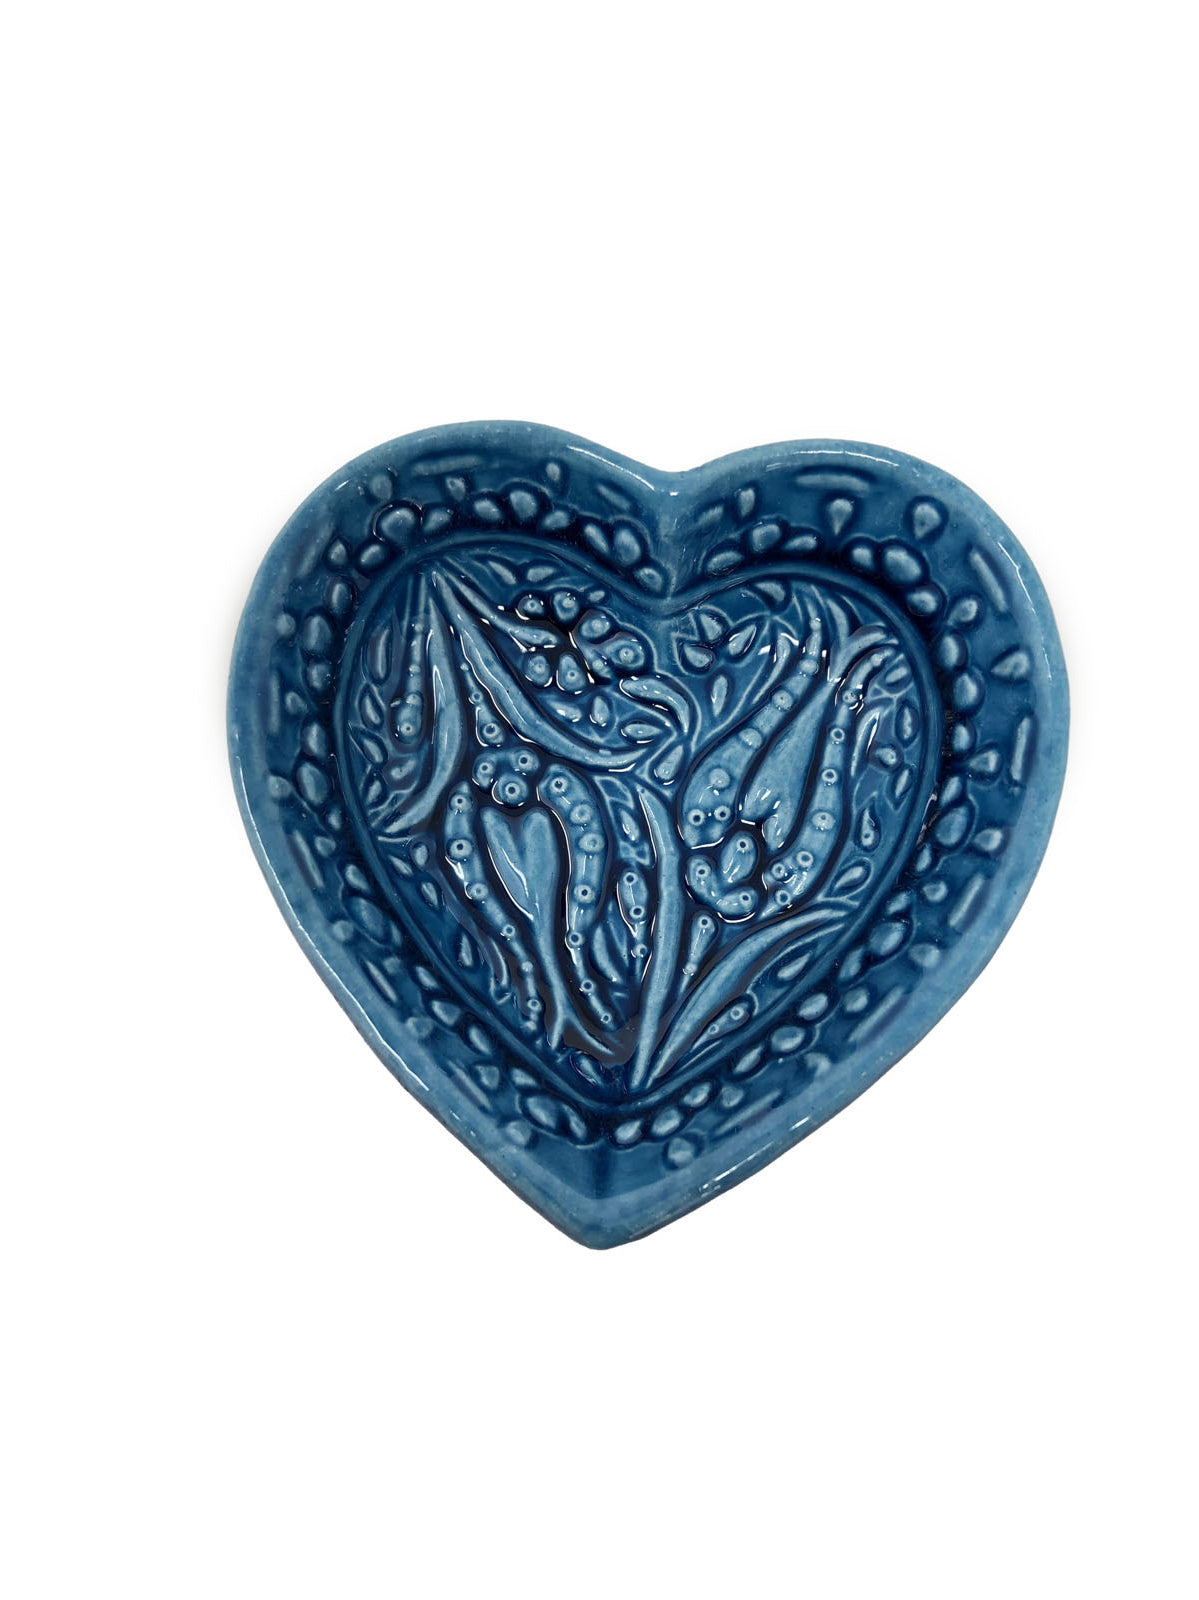 Ozel Handmade Ceramic Collection 8cm Heart Shaped Bowl Blue